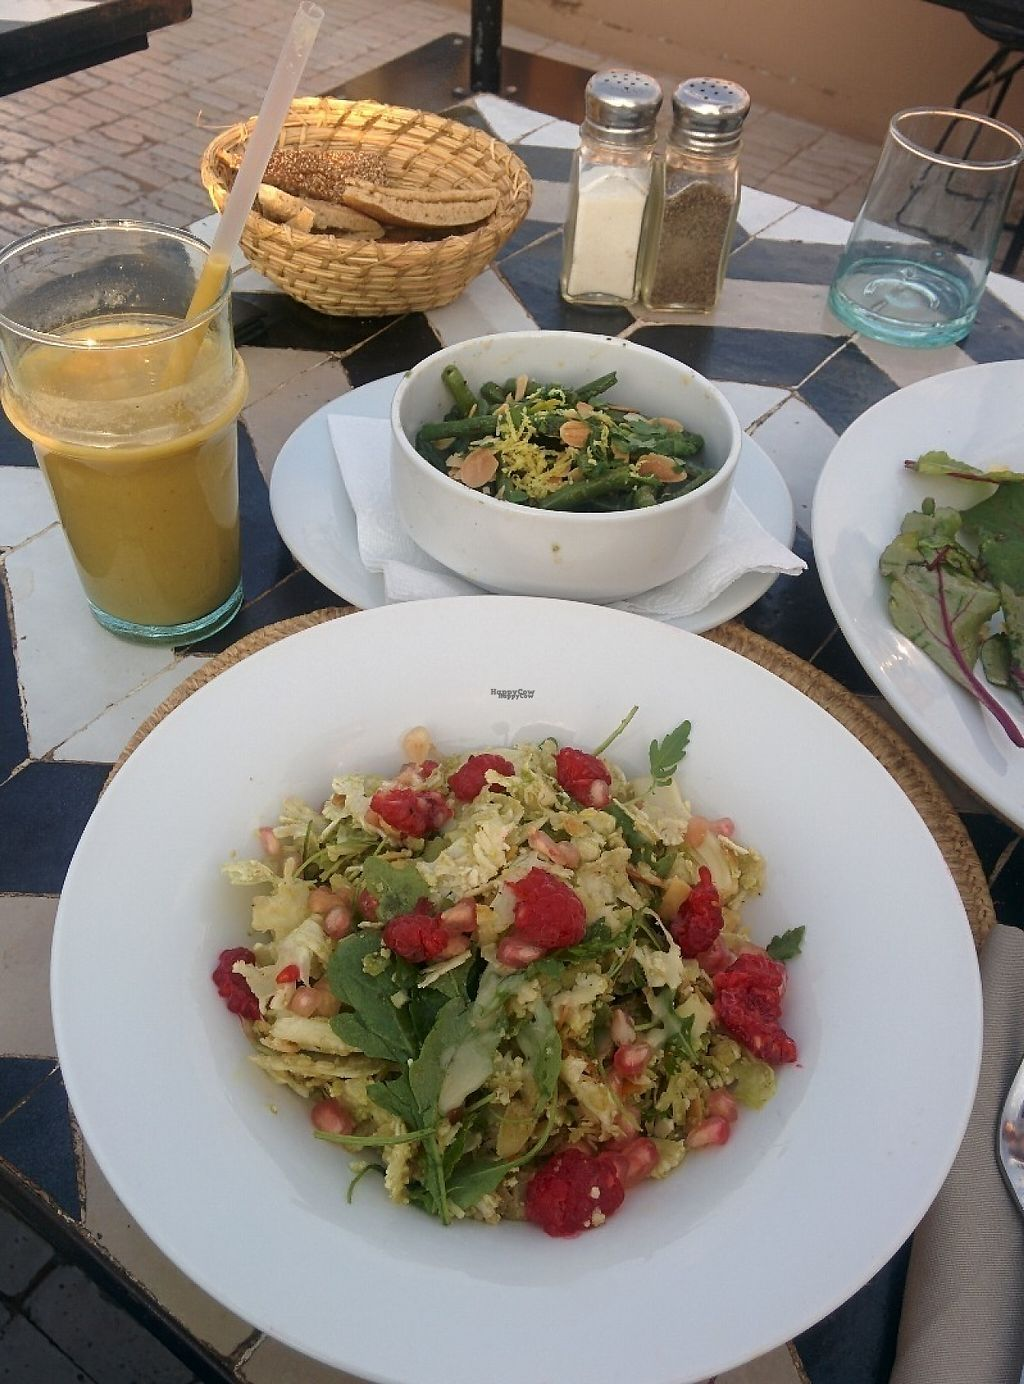 """Photo of NOMAD  by <a href=""""/members/profile/EarthlingAndrea"""">EarthlingAndrea</a> <br/>Avocado, orange and date smoothie. Coliflower salad with fruit and green beans <br/> December 10, 2016  - <a href='/contact/abuse/image/83652/198881'>Report</a>"""